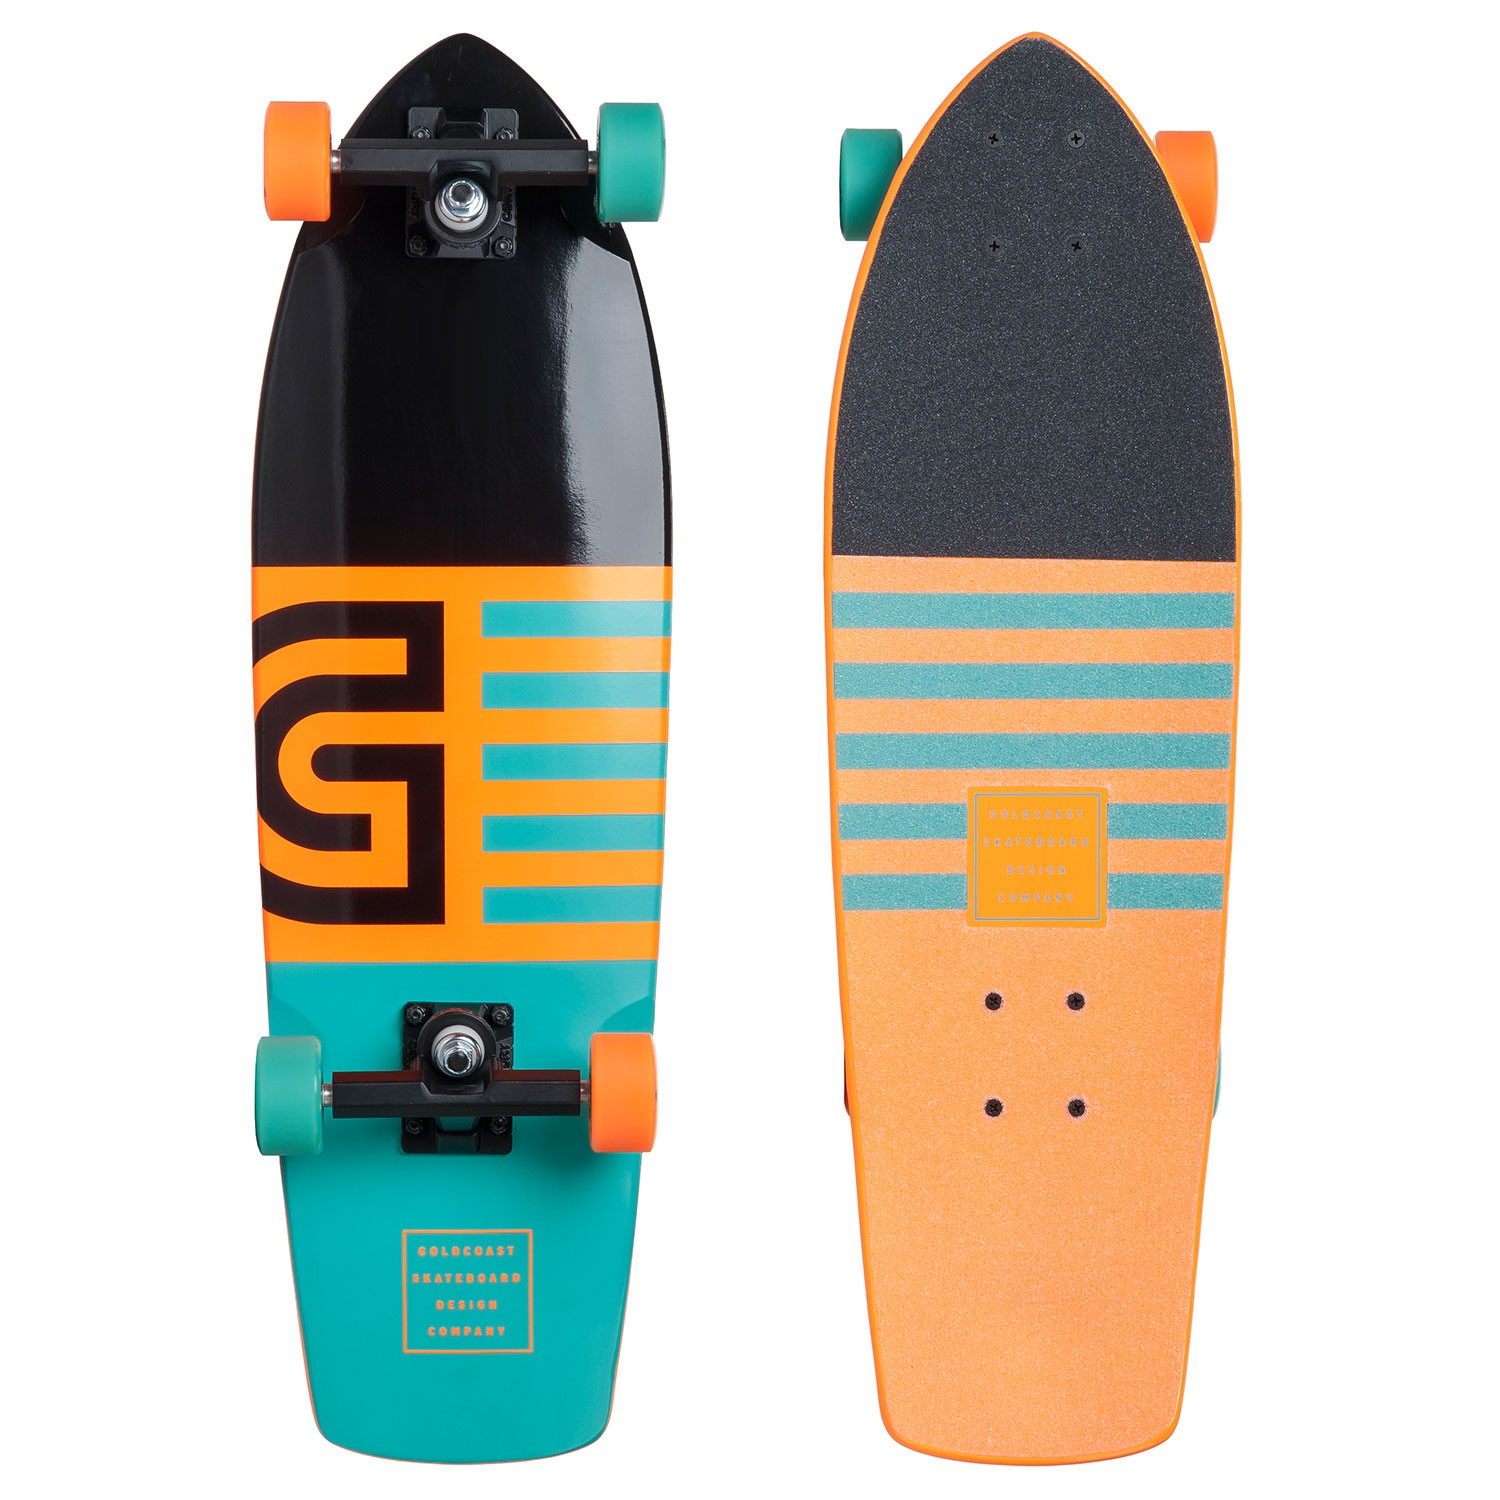 Goldcoast Jetty Cruiser- longboard